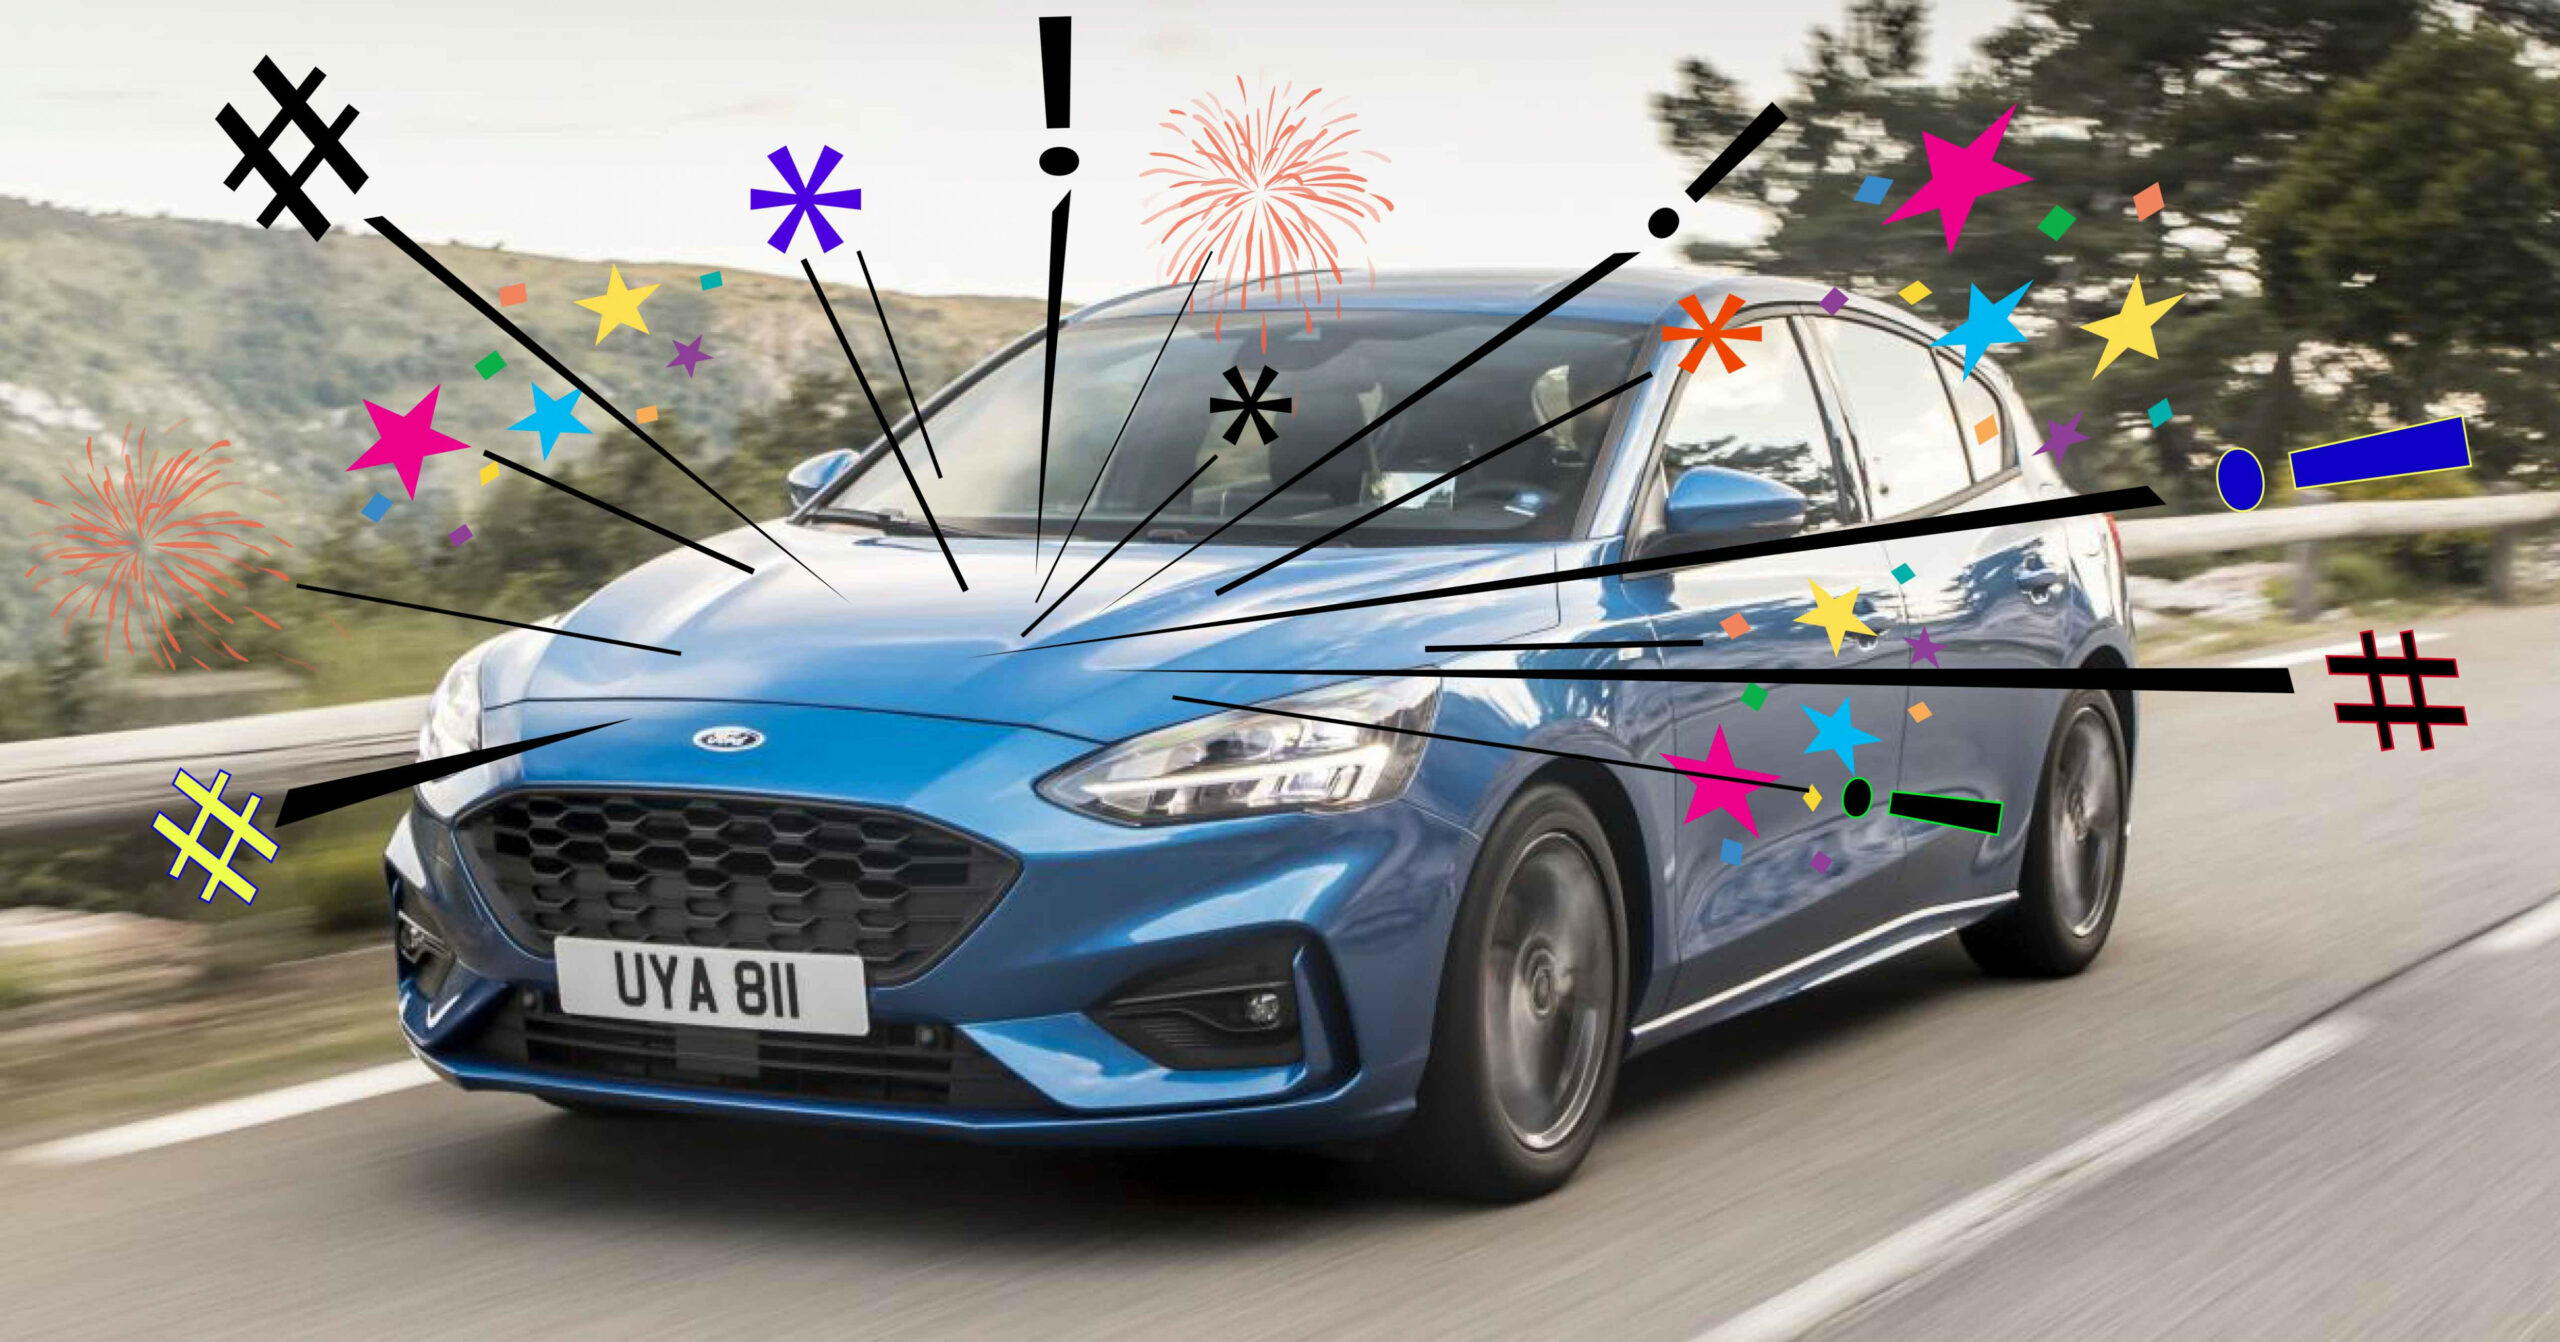 If You Own A Crappy Ford Fiesta/Focus Your Payday Has Arrived